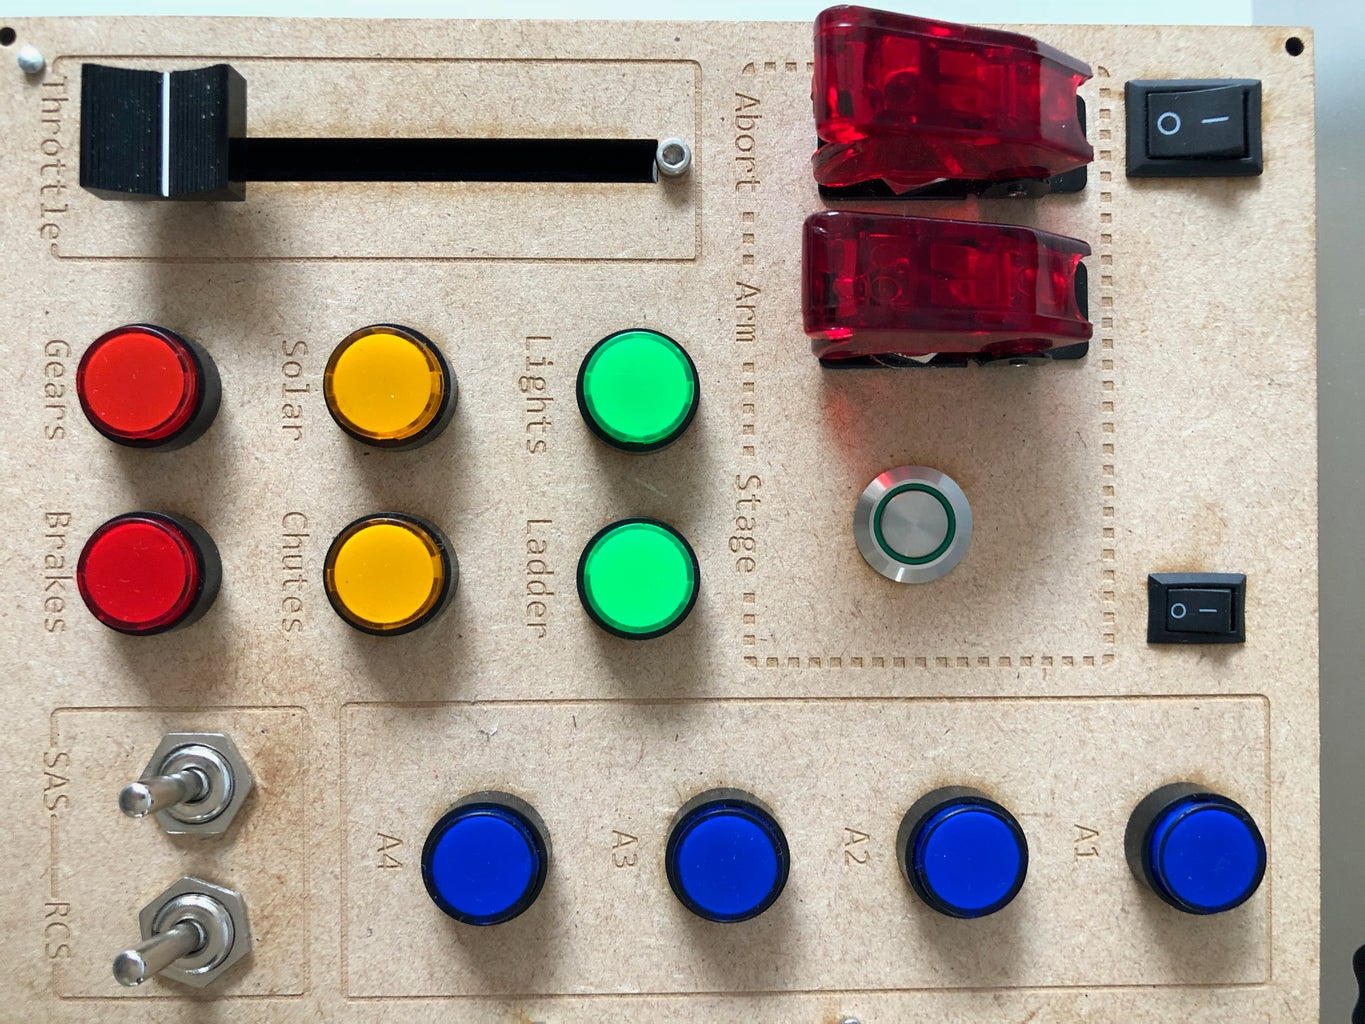 Hooking Up Buttons and Switches